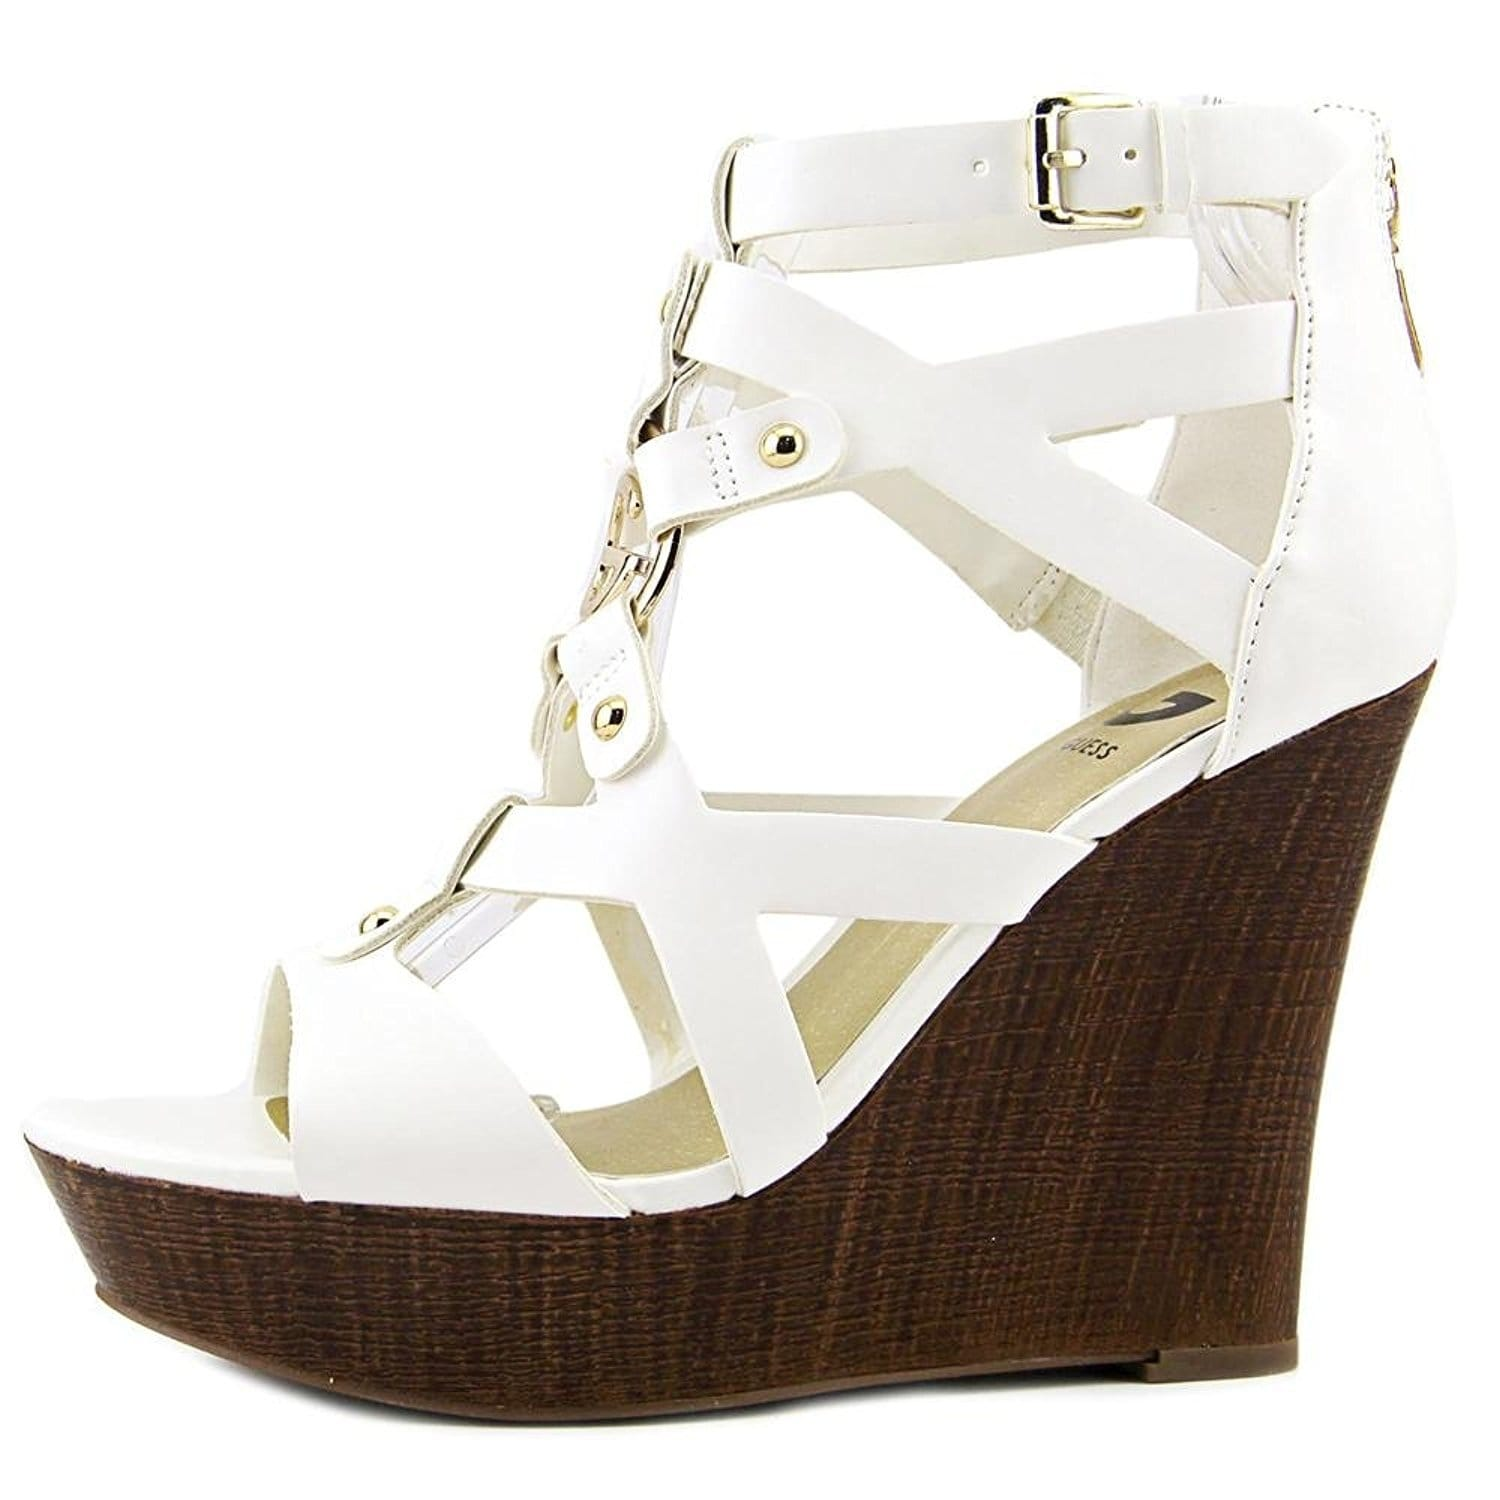 f96b8bb43af6 Shop G by Guess Womens Dodge Open Toe Casual Platform Sandals - Free  Shipping On Orders Over  45 - Overstock - 17637059